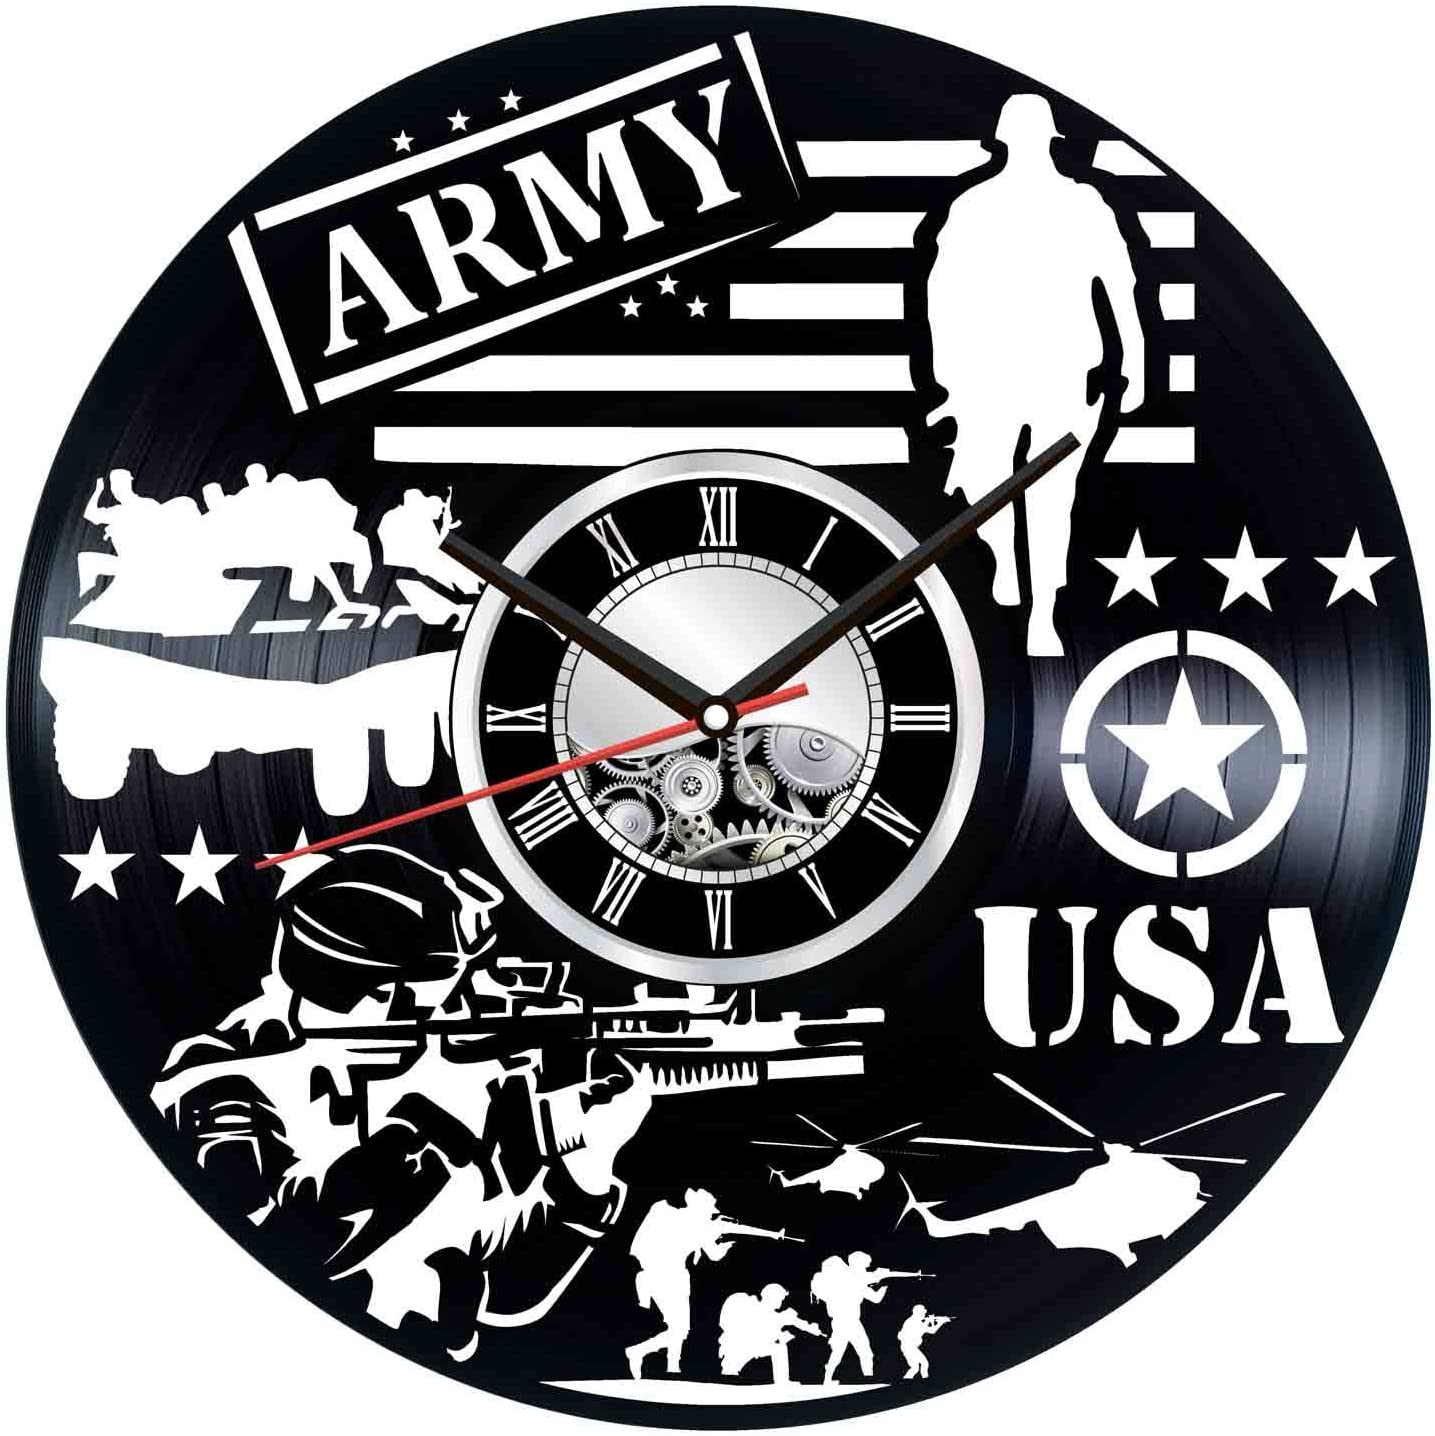 USA Army Wall Clock Made of Vintage Vinyl Records - Stylish Clock and Amazing Gifts Idea – Unique Home Decor – Personalized Presents for Men Women Kids – Great for Living Room Bedroom Kitchen